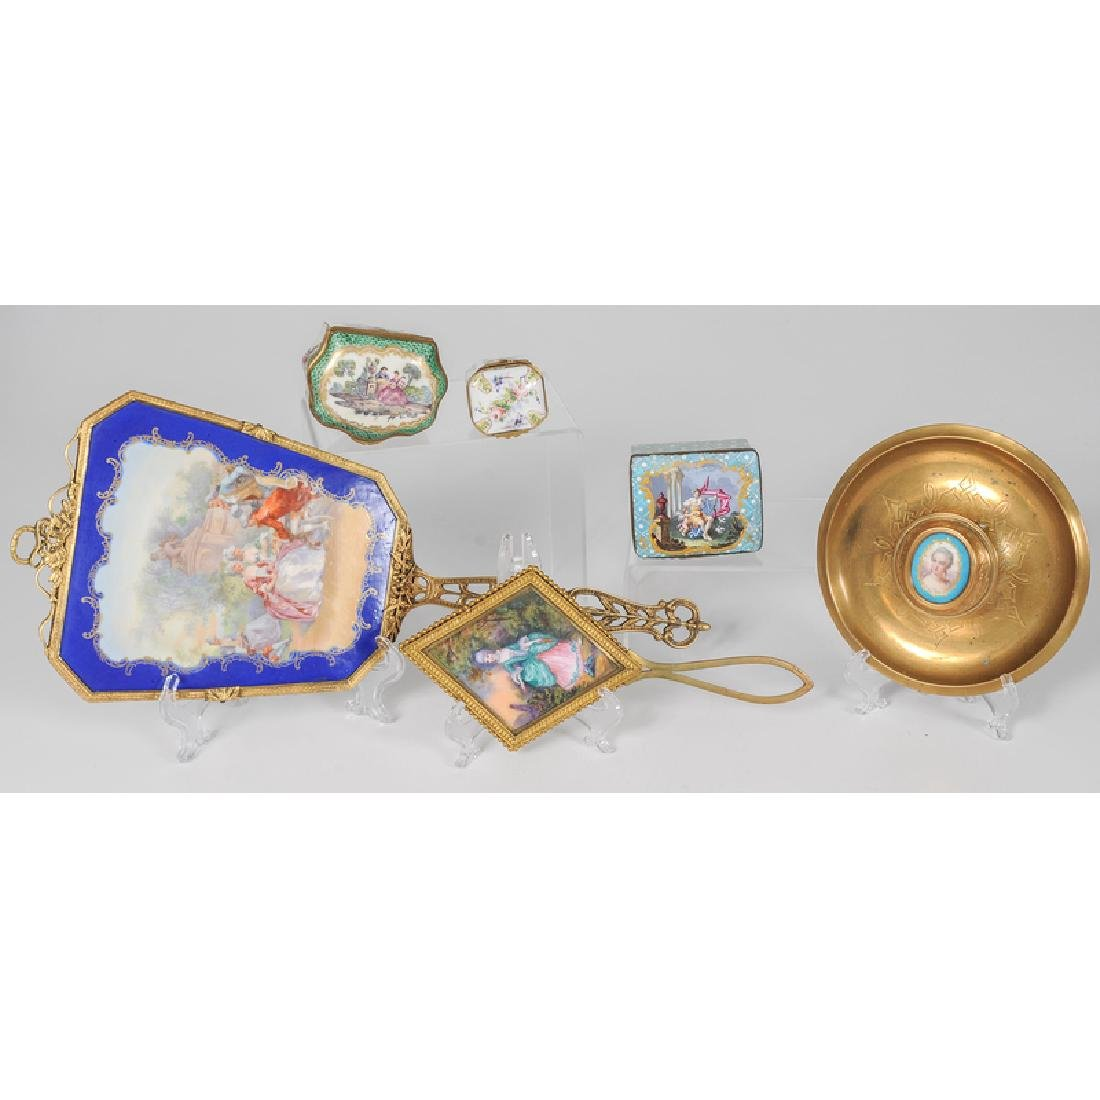 Assortment of French Porcelain and Enamel Ladies - 2